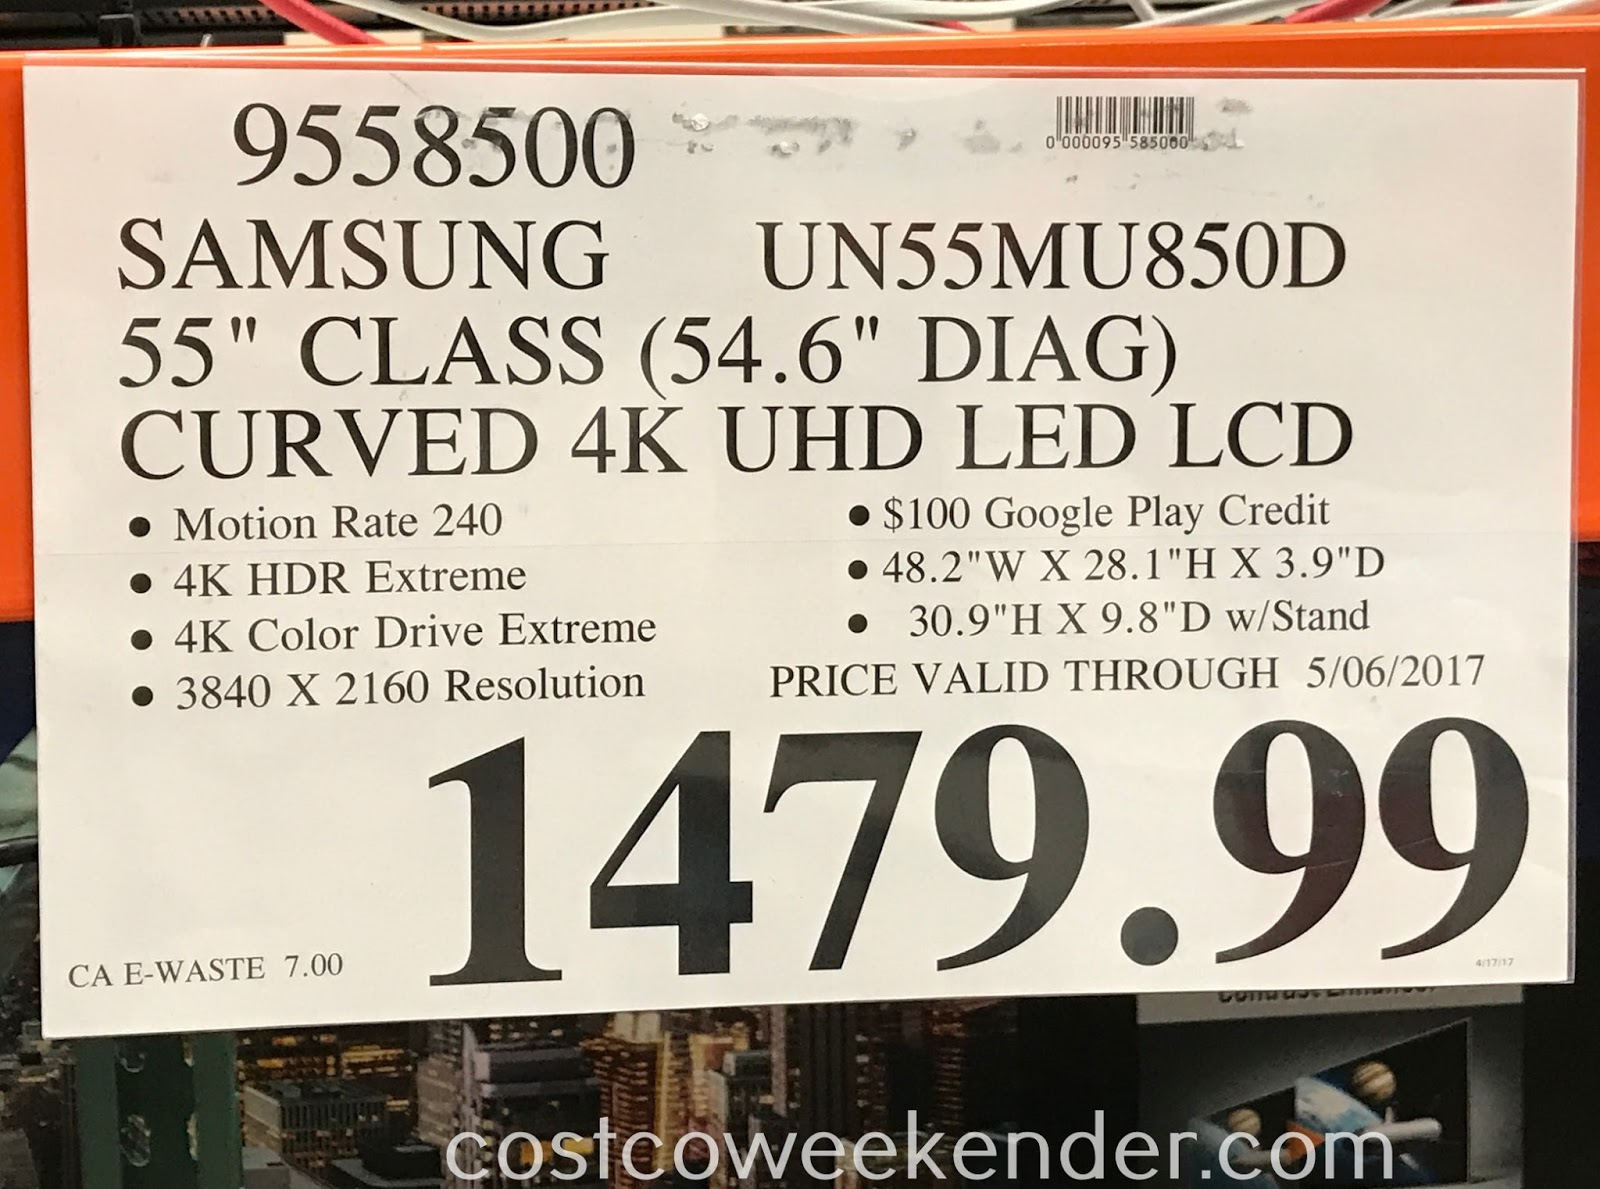 Deal for the Samsung UN55MU850D 55 inch Curved 4K UHD LED LCD TV at Costco